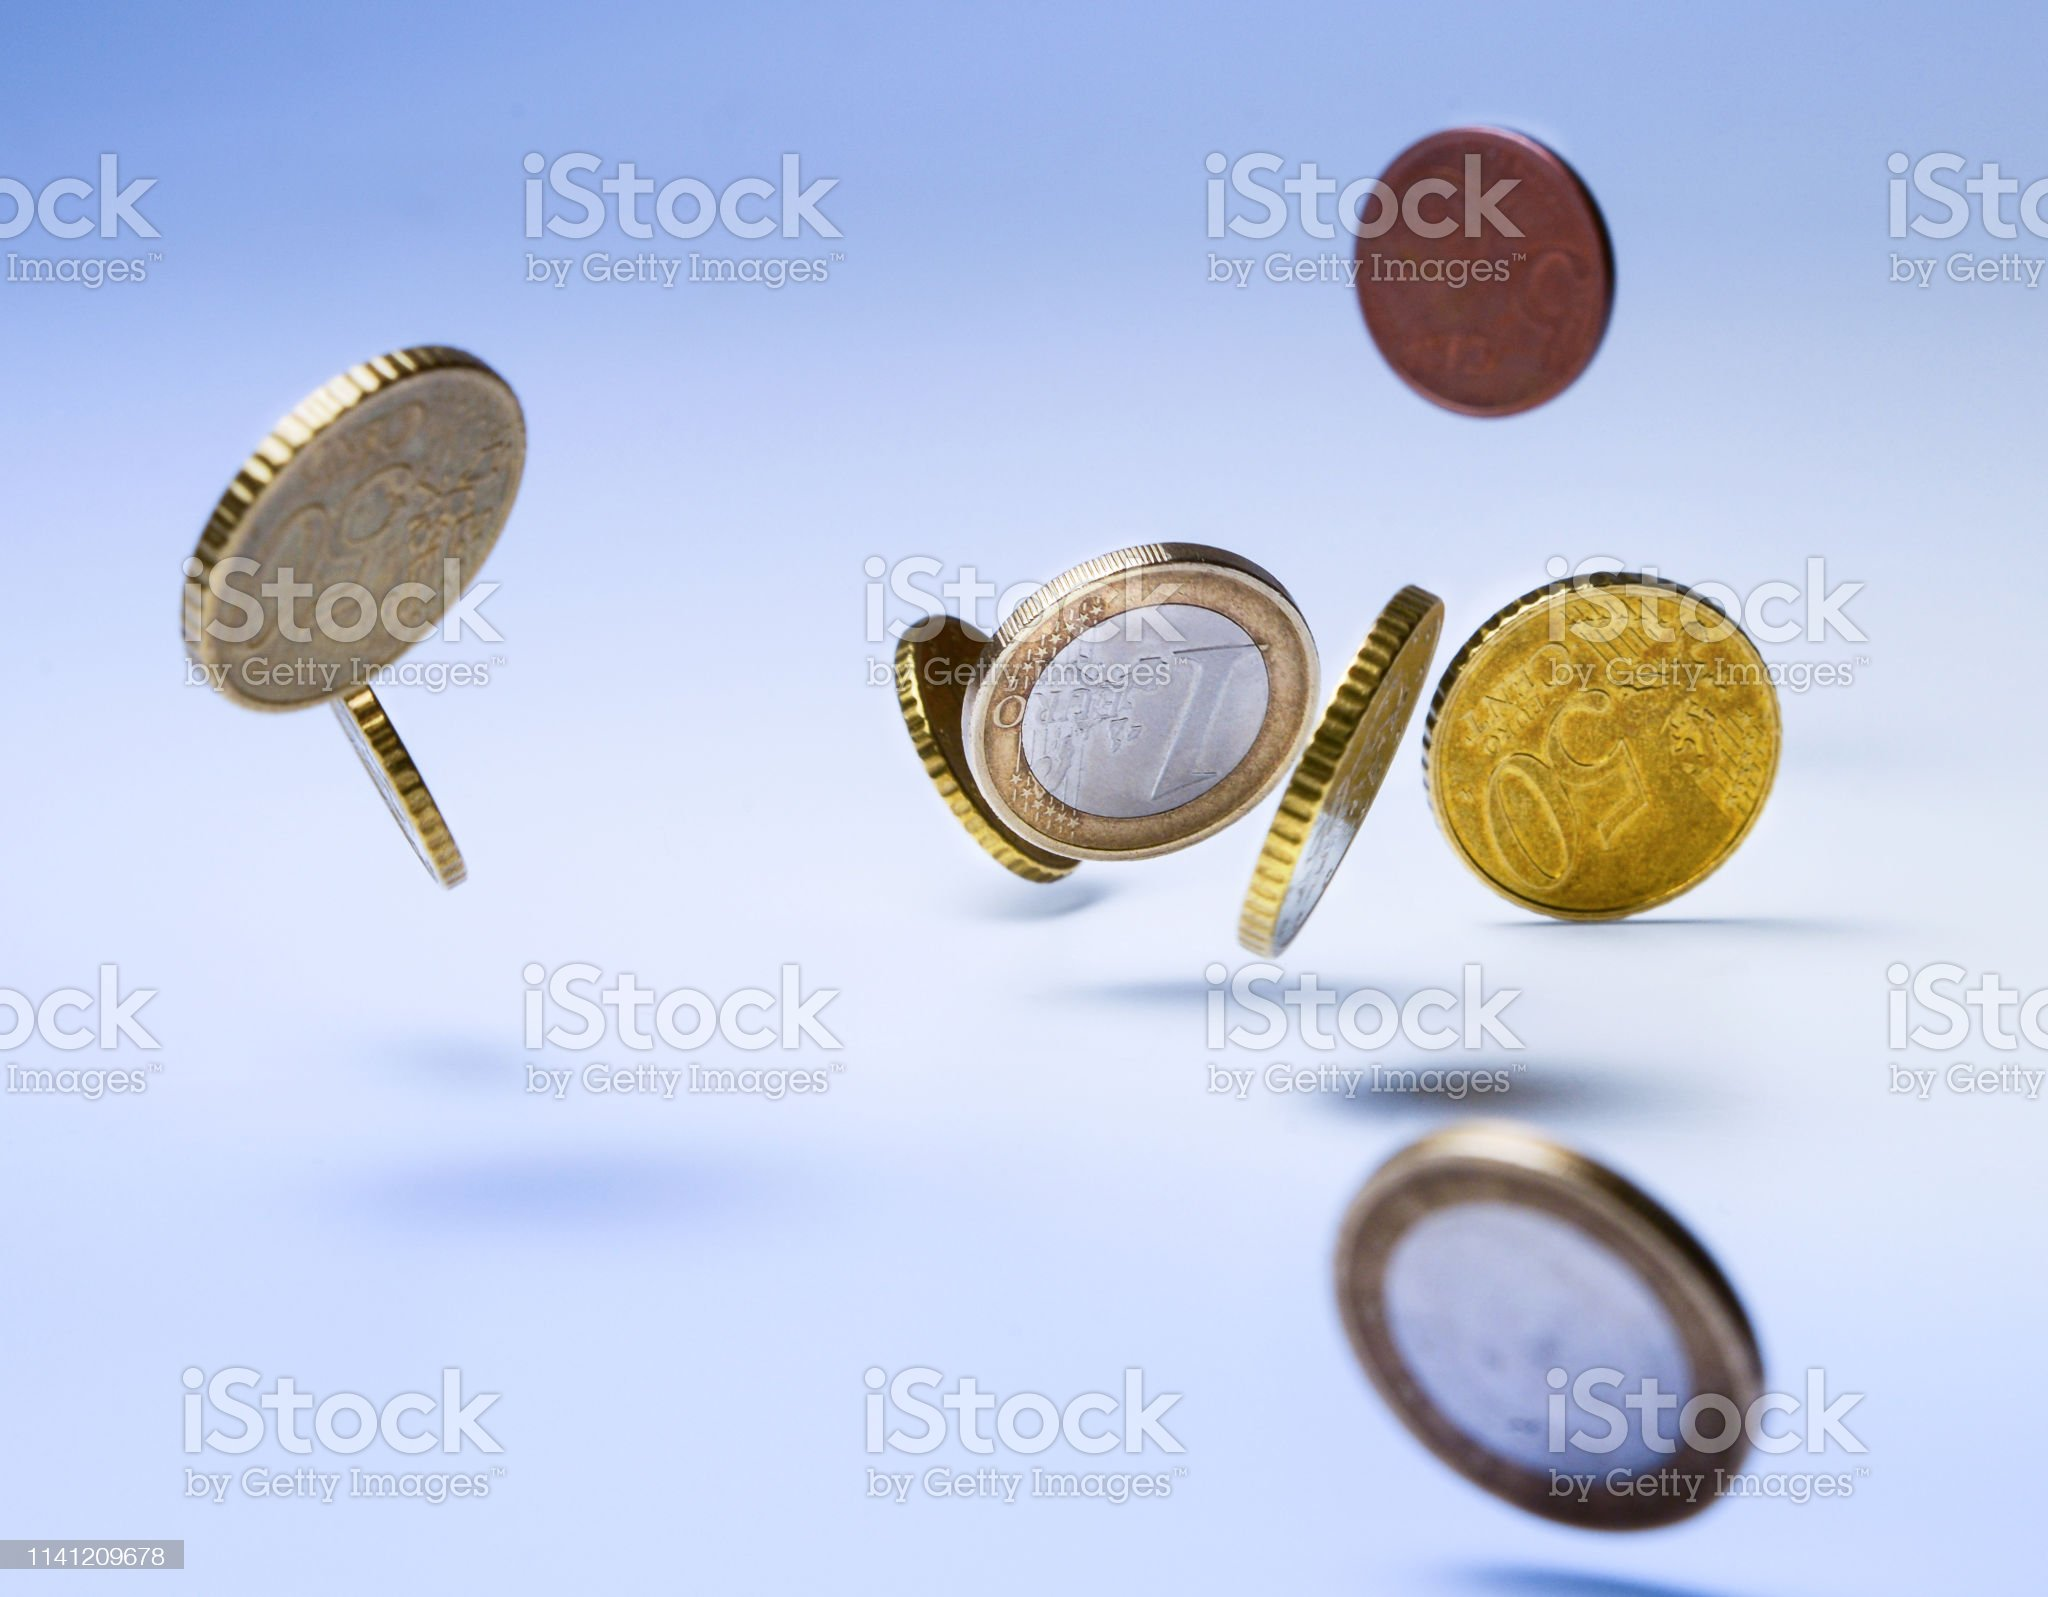 Falling euro coins. Symbol of wealth, accumulation or fall of the market, inflation and so on. Close-up. Falling euro coins. Symbol of wealth, accumulation or fall of the market, inflation and so on. Close-up. Analyzing Stock Photo Make Money fast